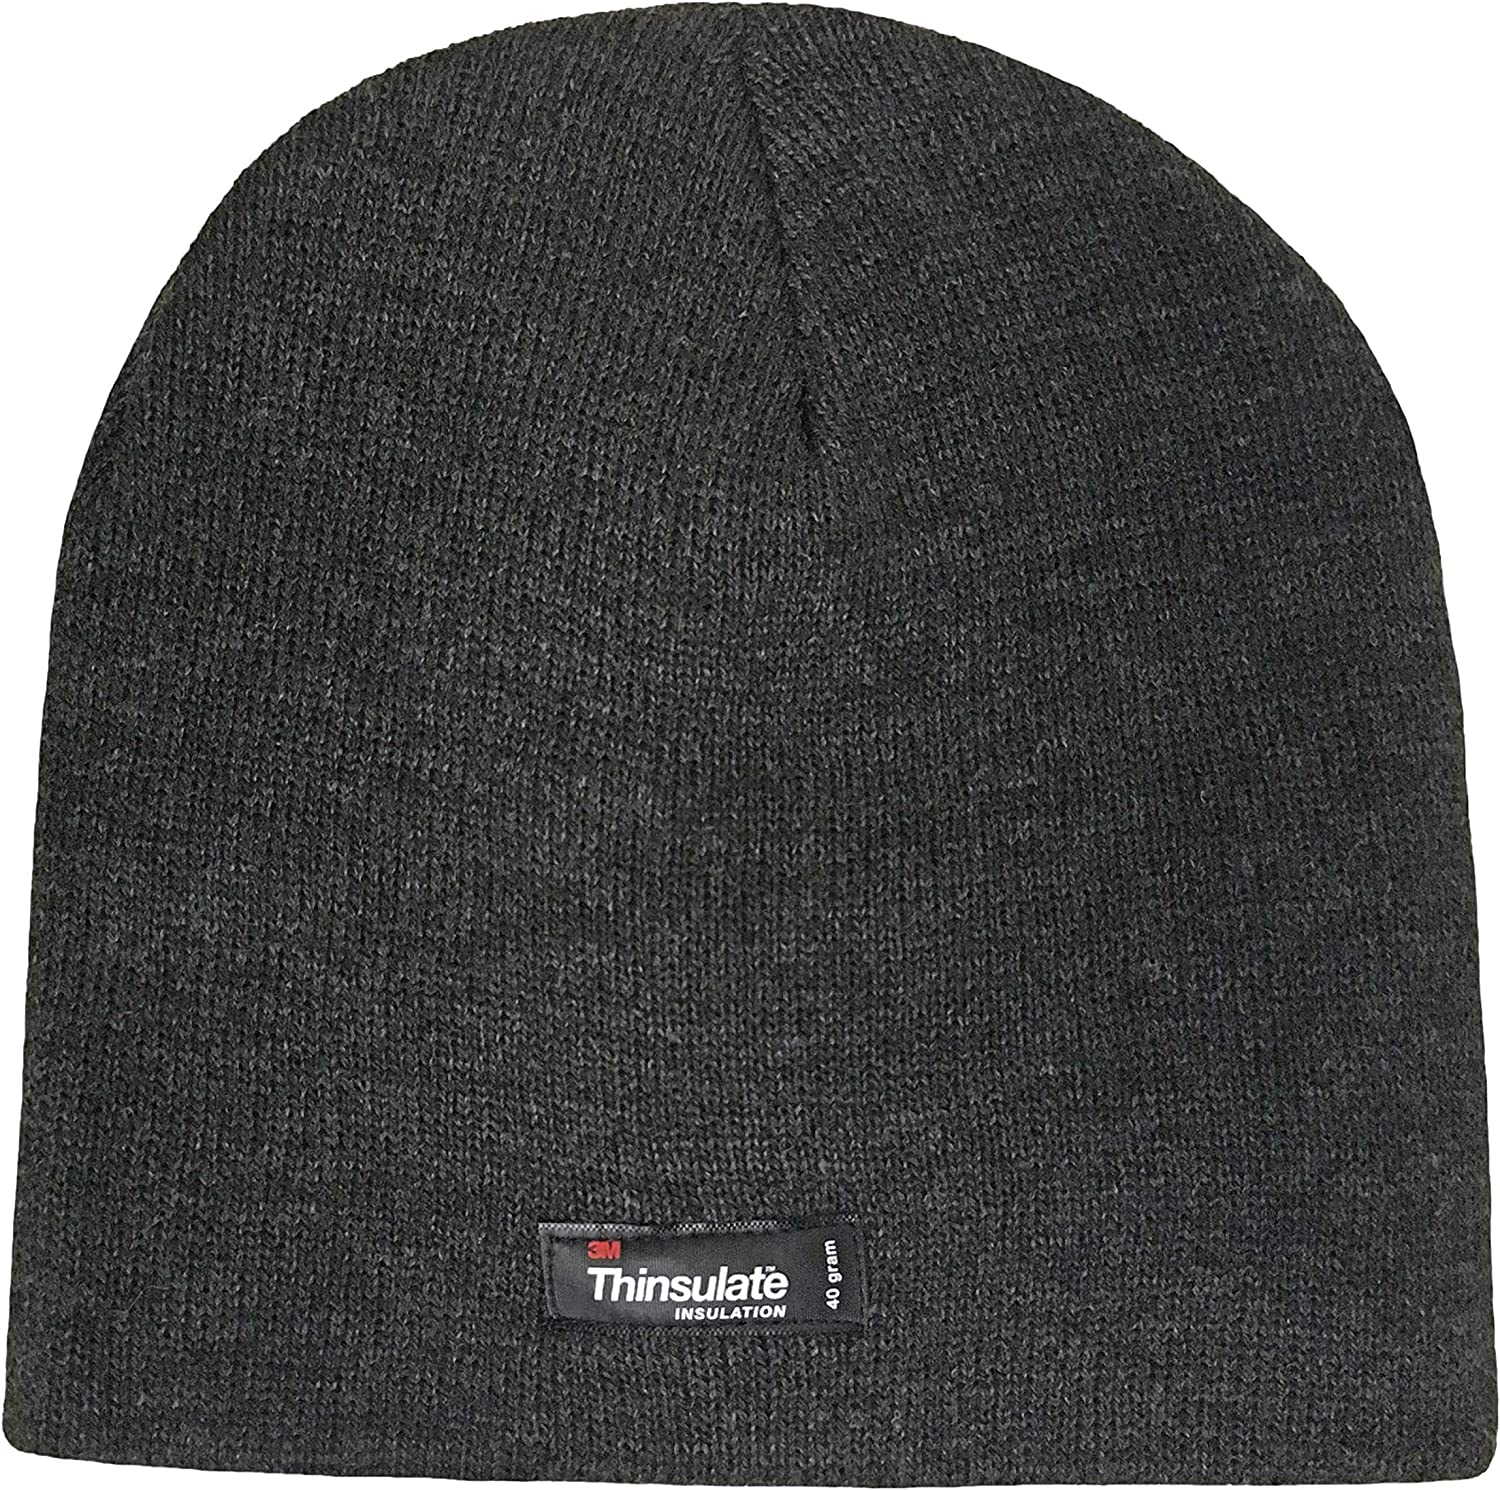 Boys//Youths//Teenager  THINSULATE  Fleece Lined  Thermal  Winter Warm Beanie Hat